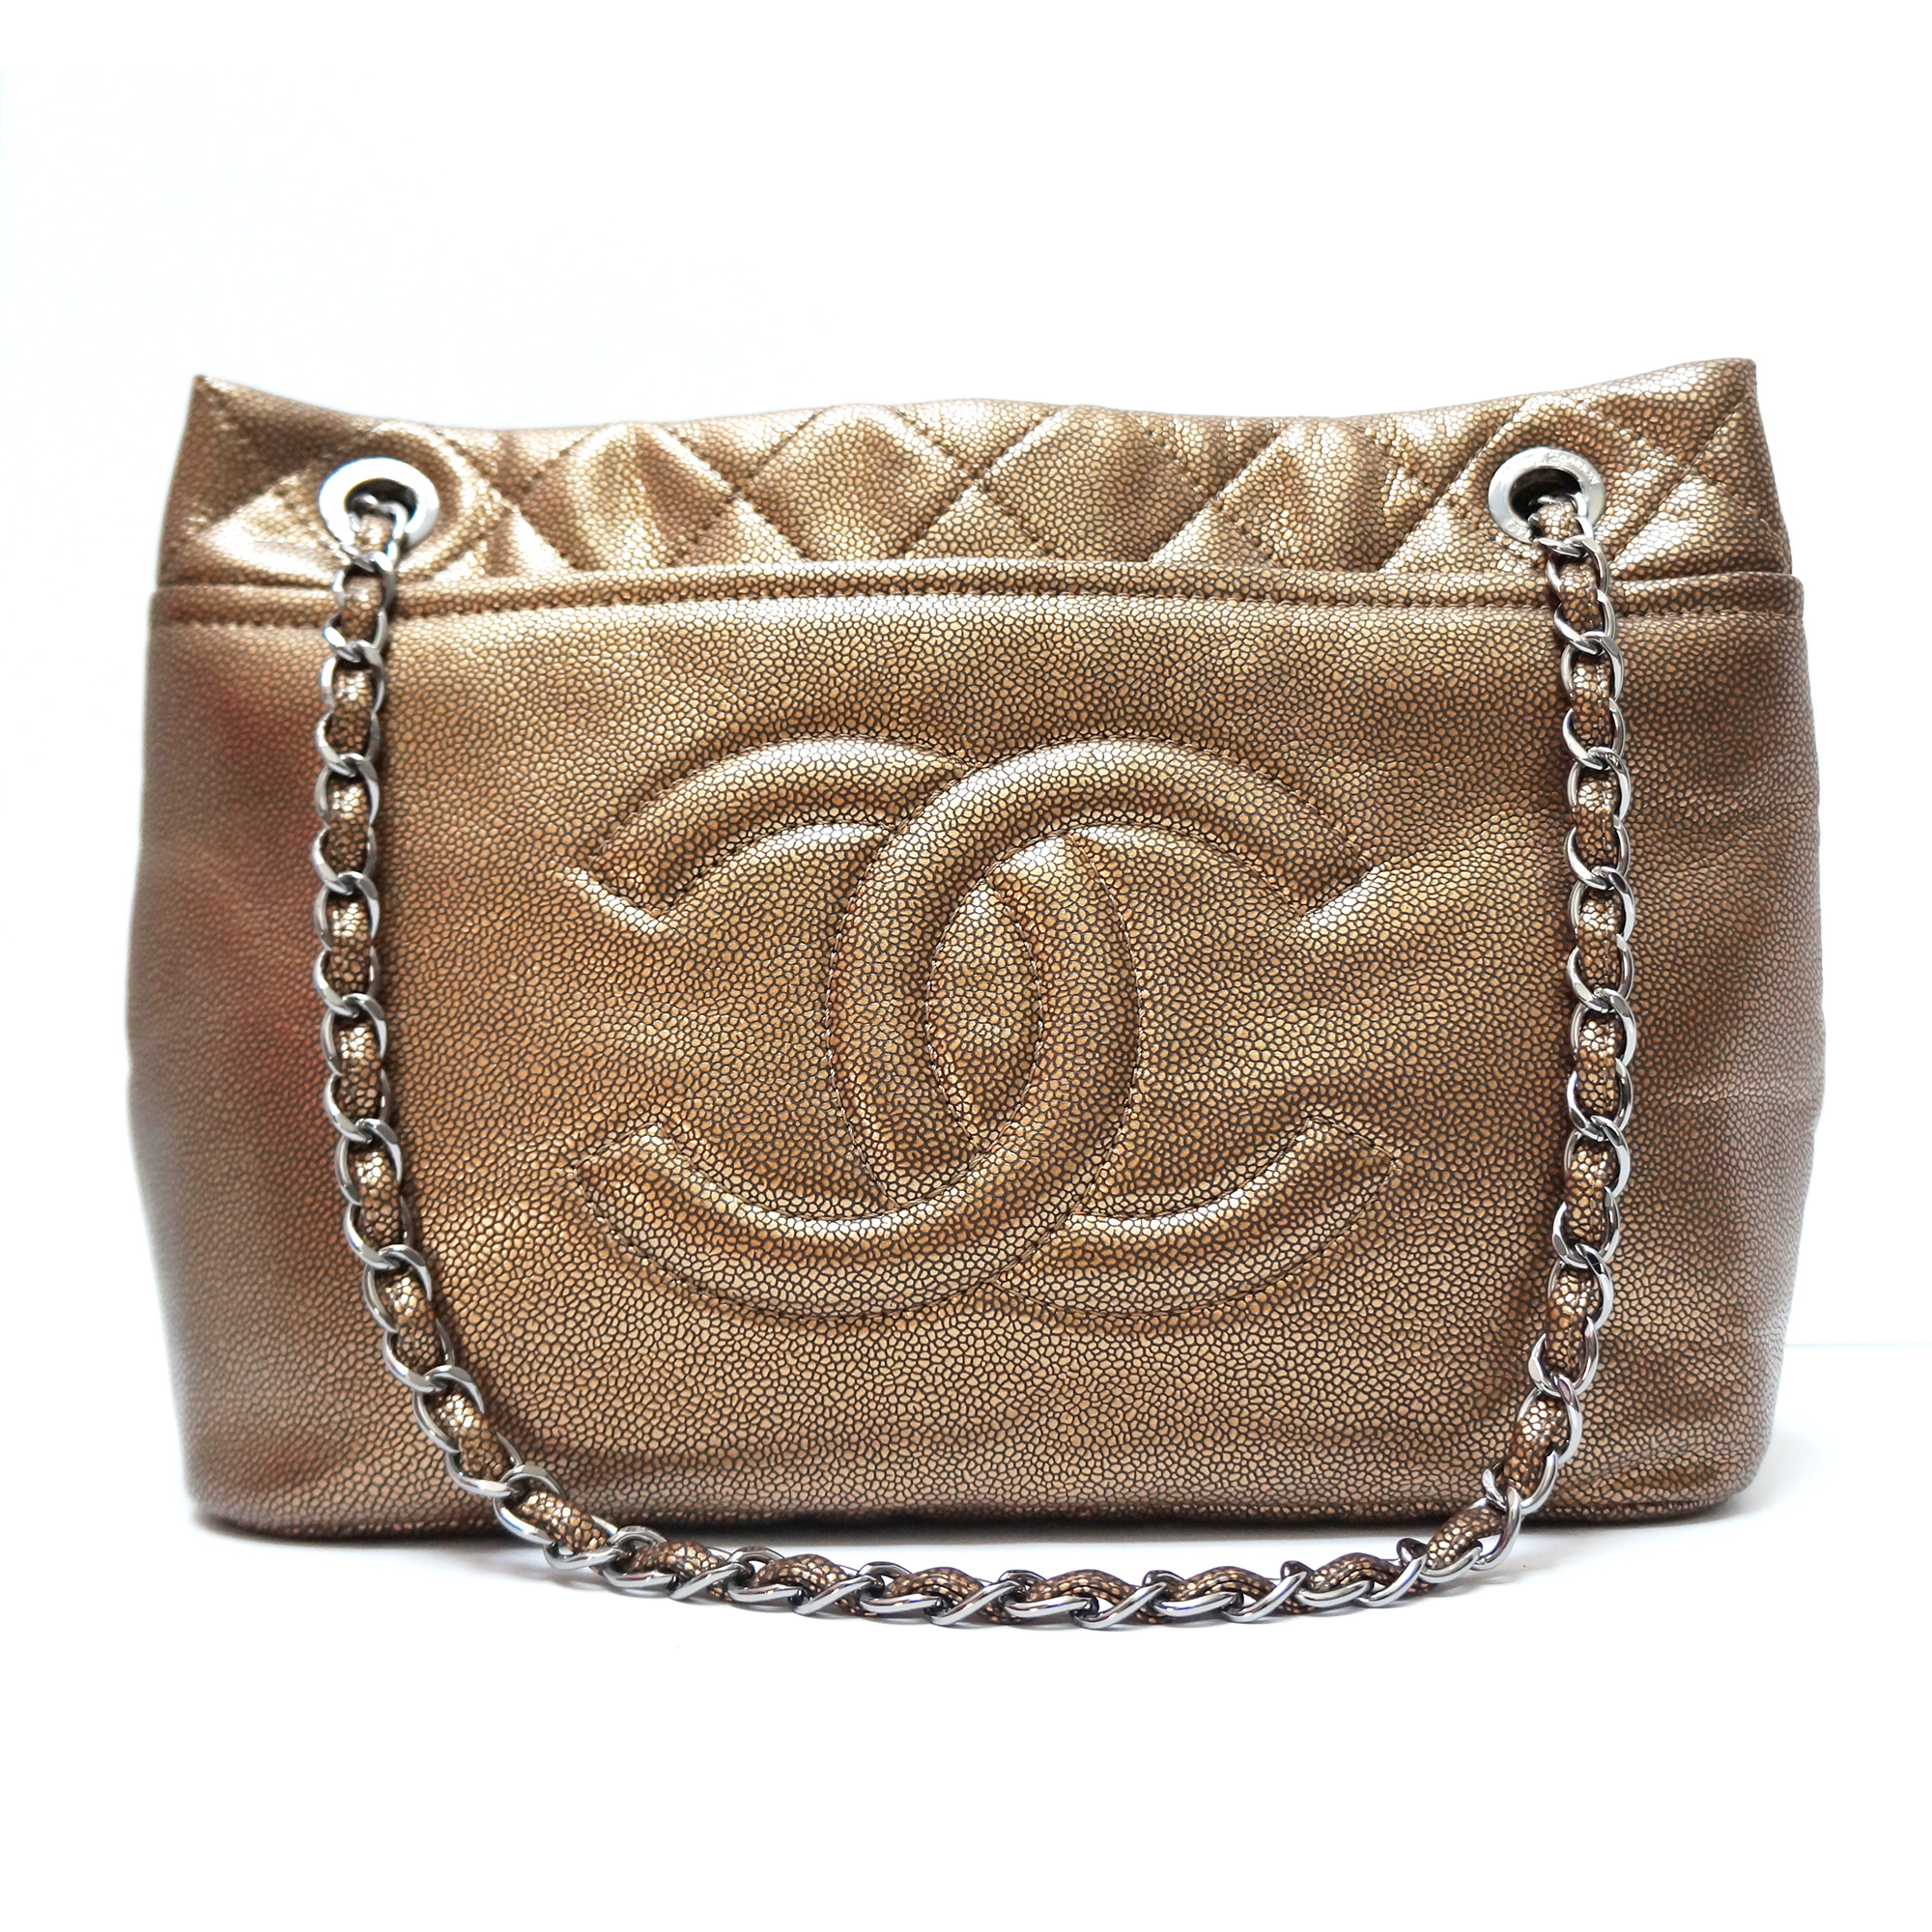 Chanel Bronze Soft Caviar Leather Large Shopping Tote